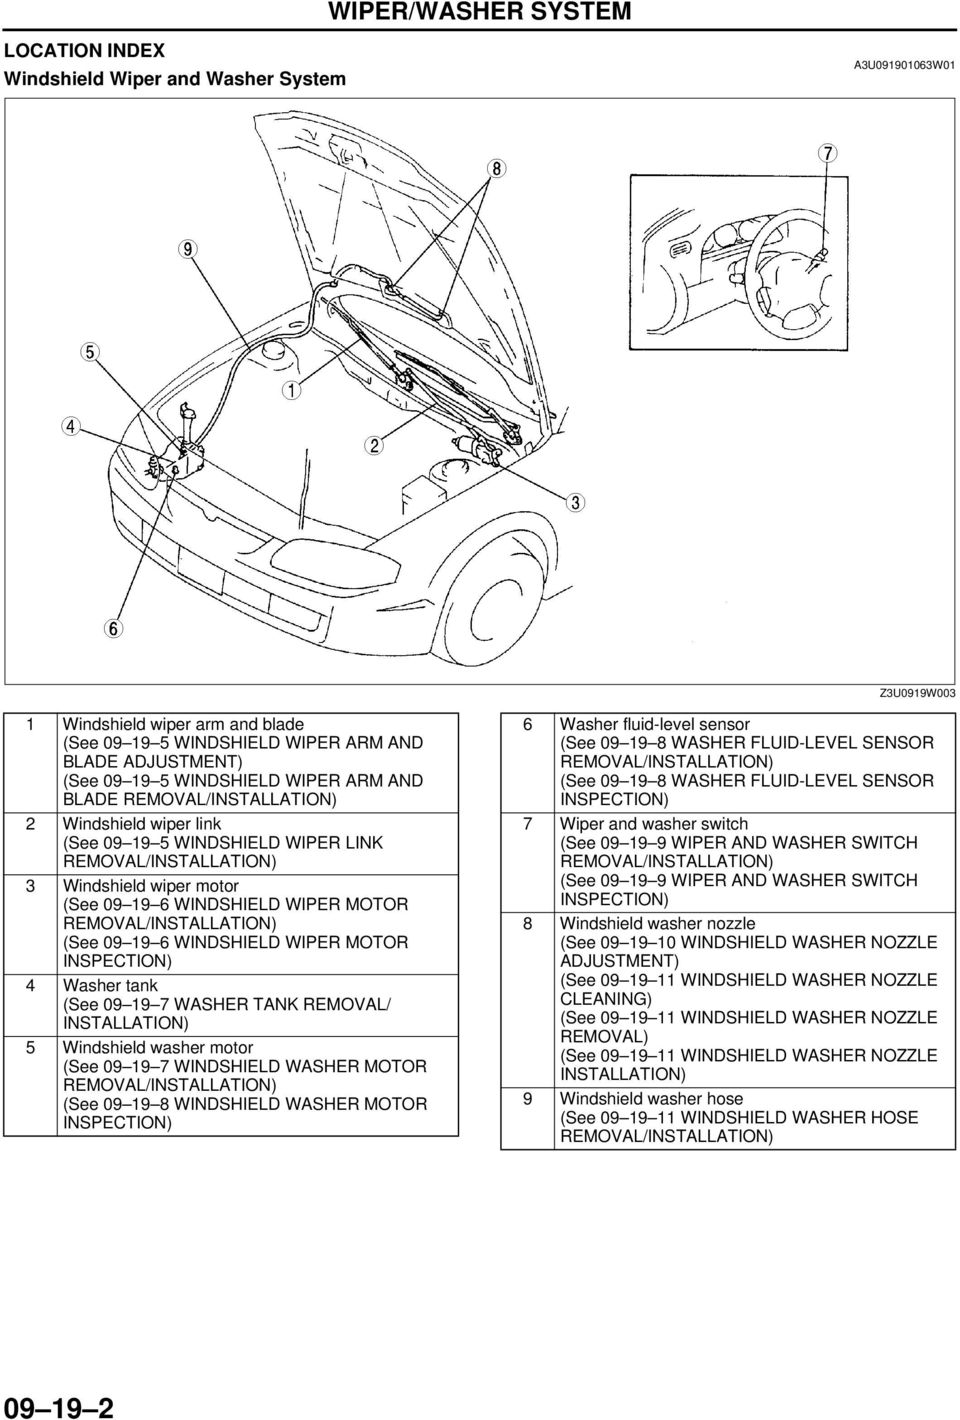 medium resolution of washer tank removal installation 5 windshield washer motor see 09 19 7 windshield